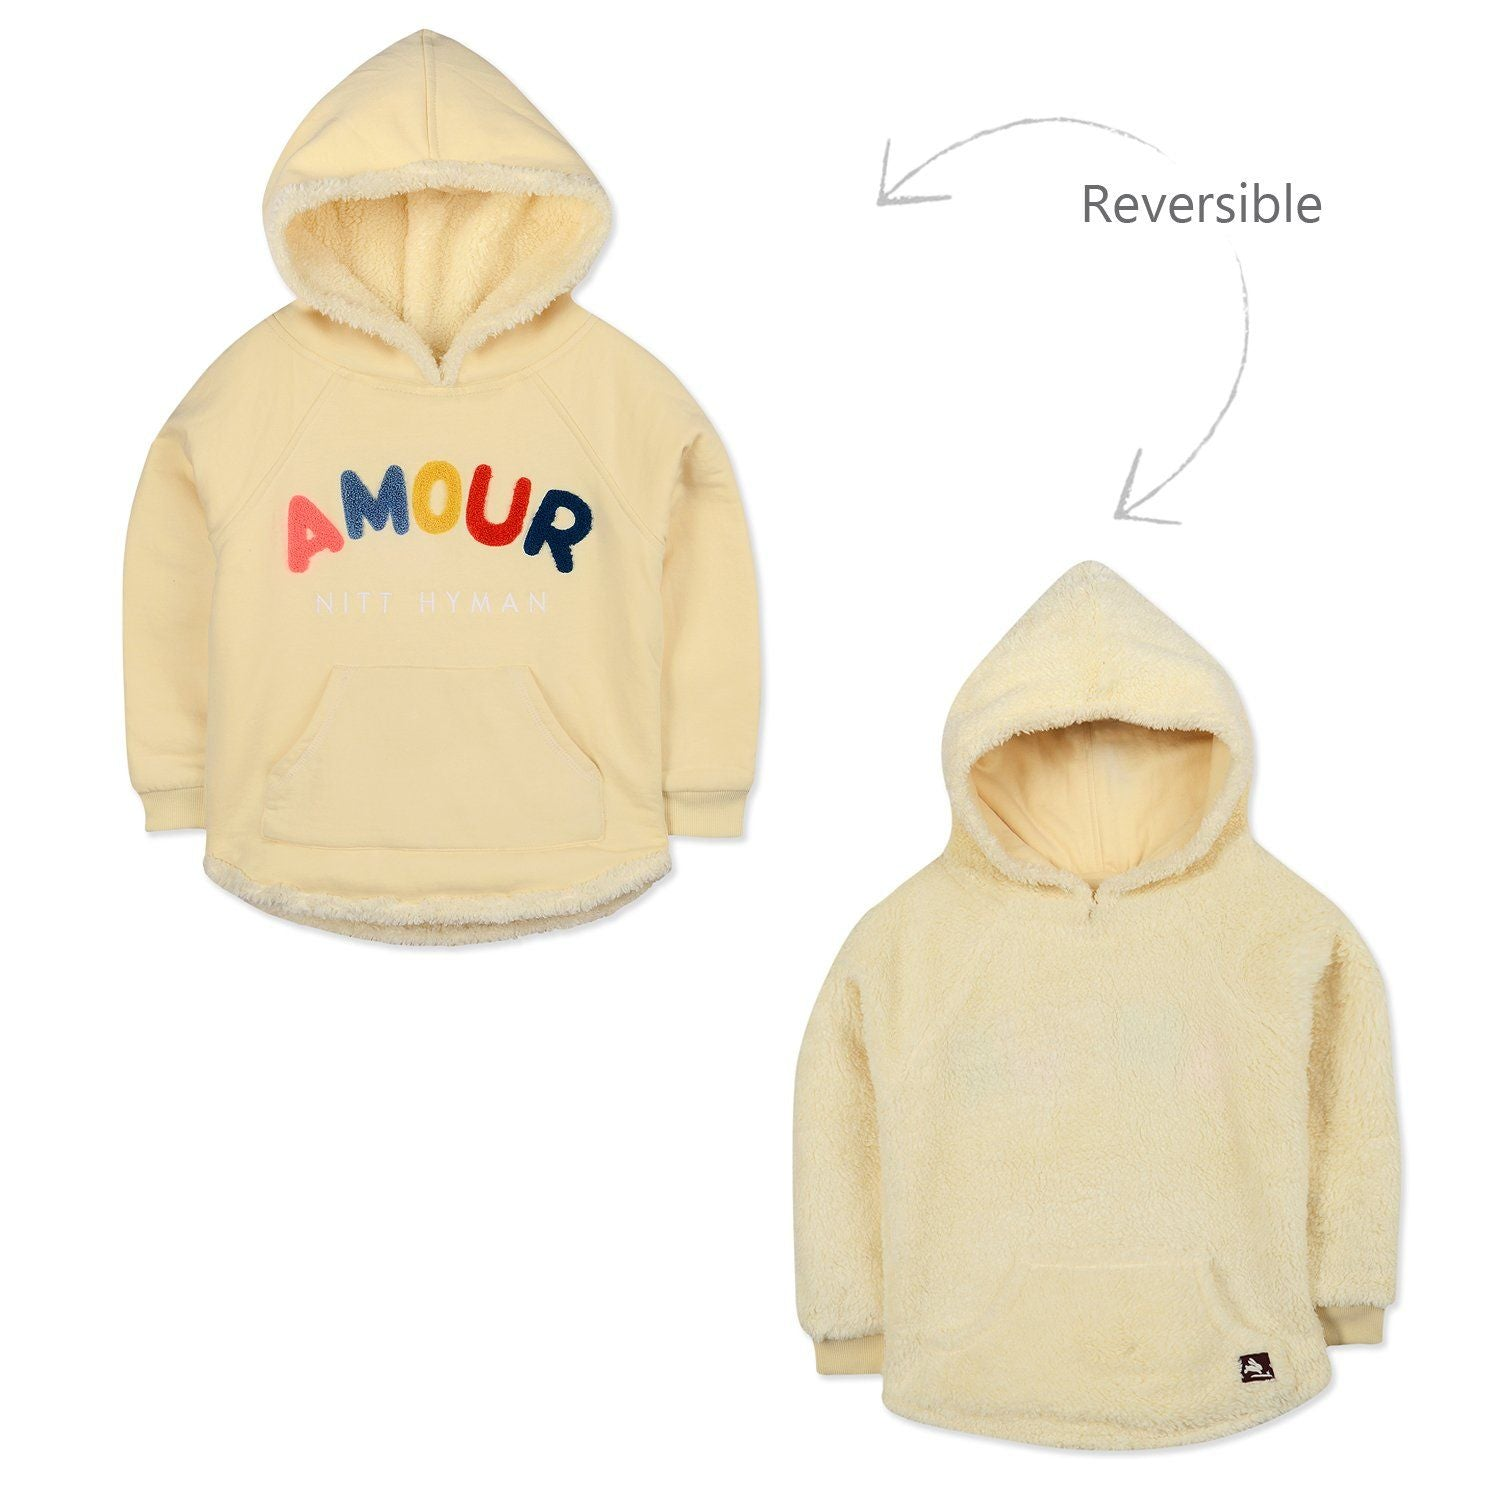 Parisian Reversible Sweatshirt for kids